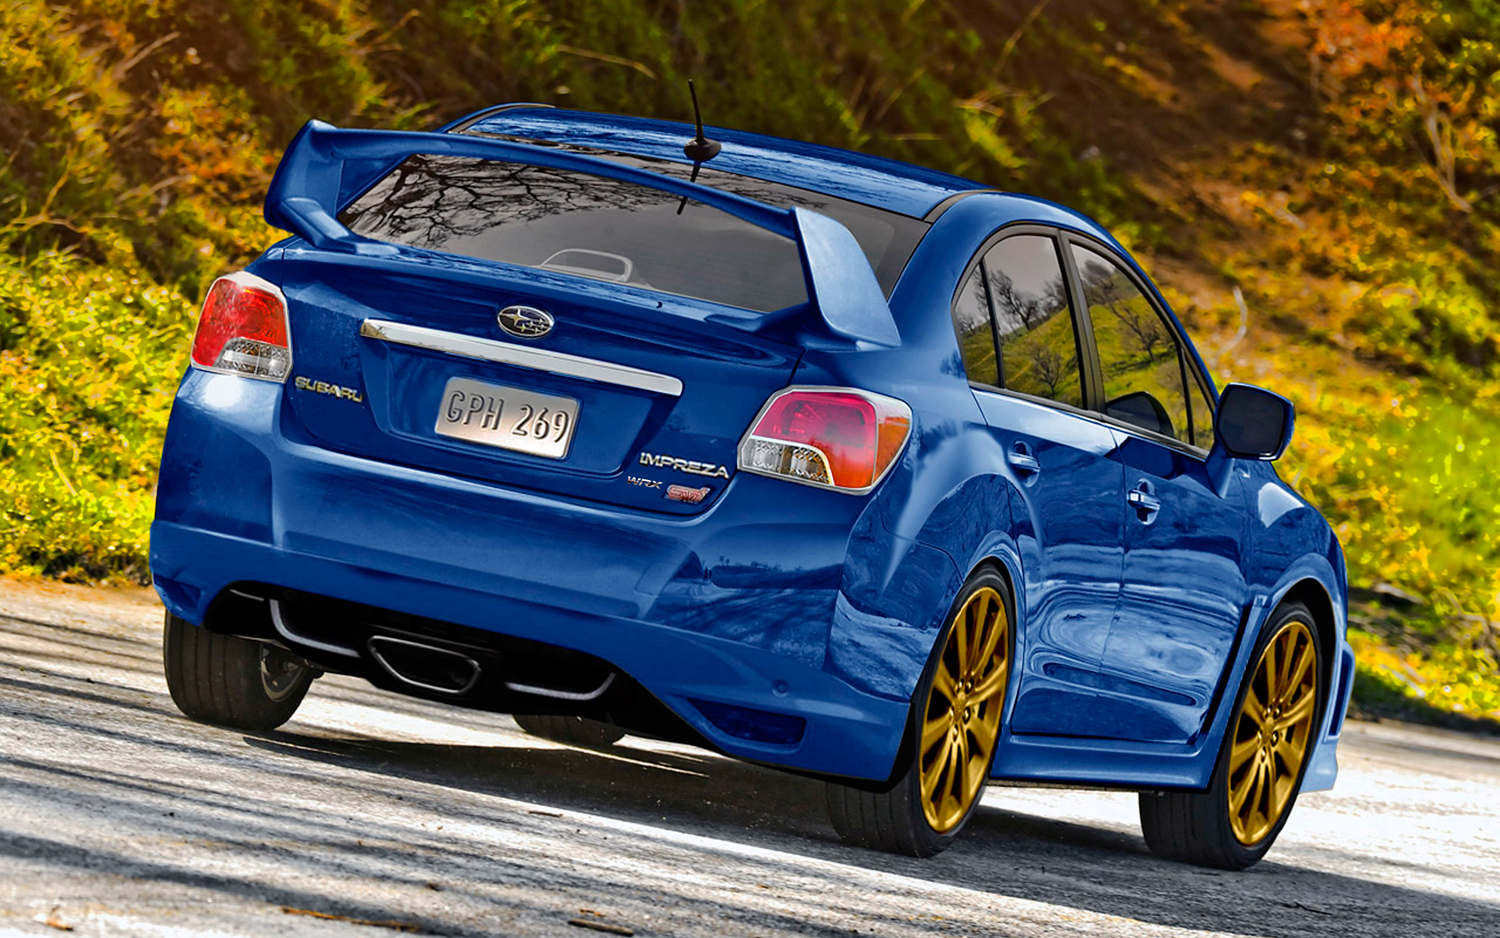 subaru impreza wrx sti 2013 review amazing pictures and images look at the car. Black Bedroom Furniture Sets. Home Design Ideas